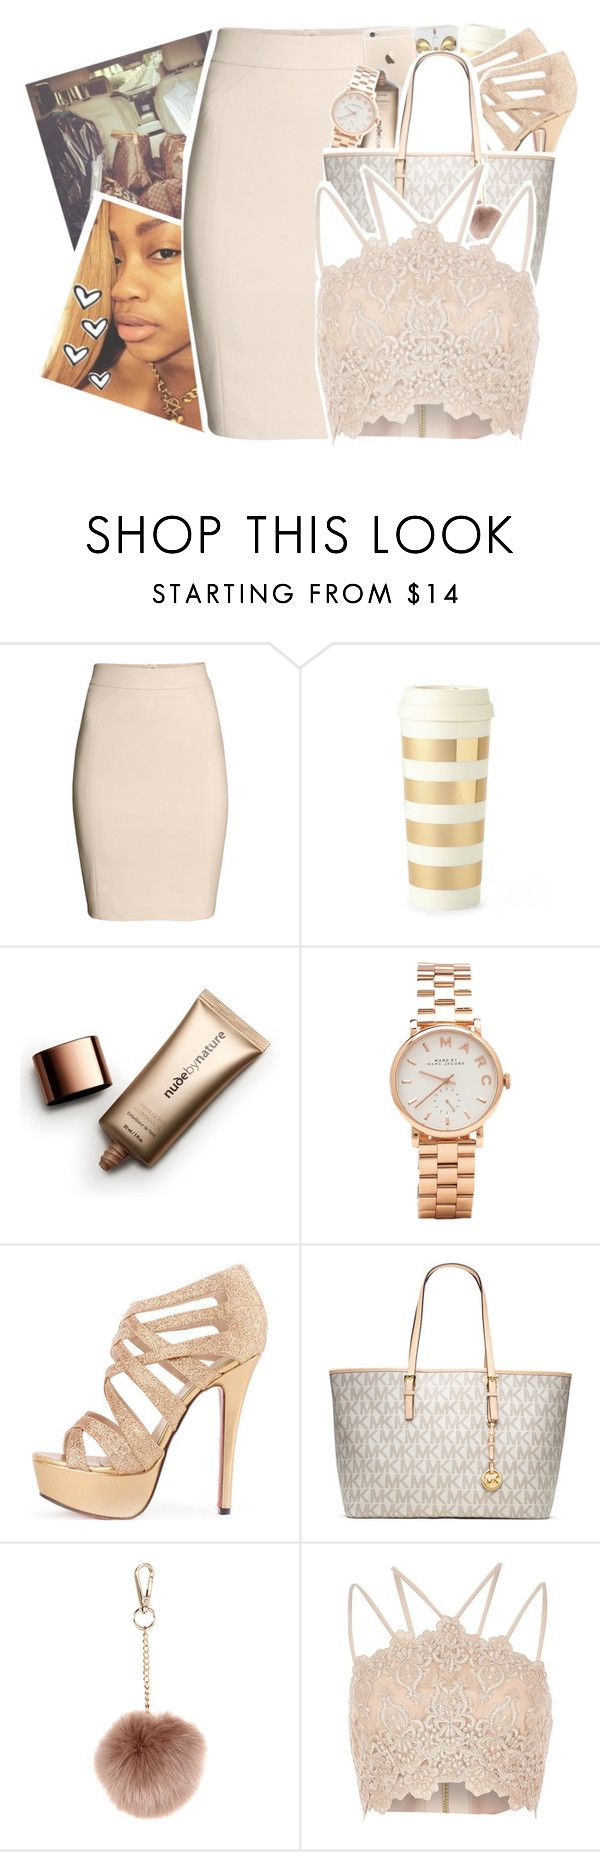 """« she just changed her twitter to 'partygetsmewetter' »"" by p-rojectbaby ❤ liked on Polyvore featuring H&M, Kate Spade, Nude by Nature, Marc by Marc Jacobs, MICHAEL Michael Kors, Accessorize and River Island"